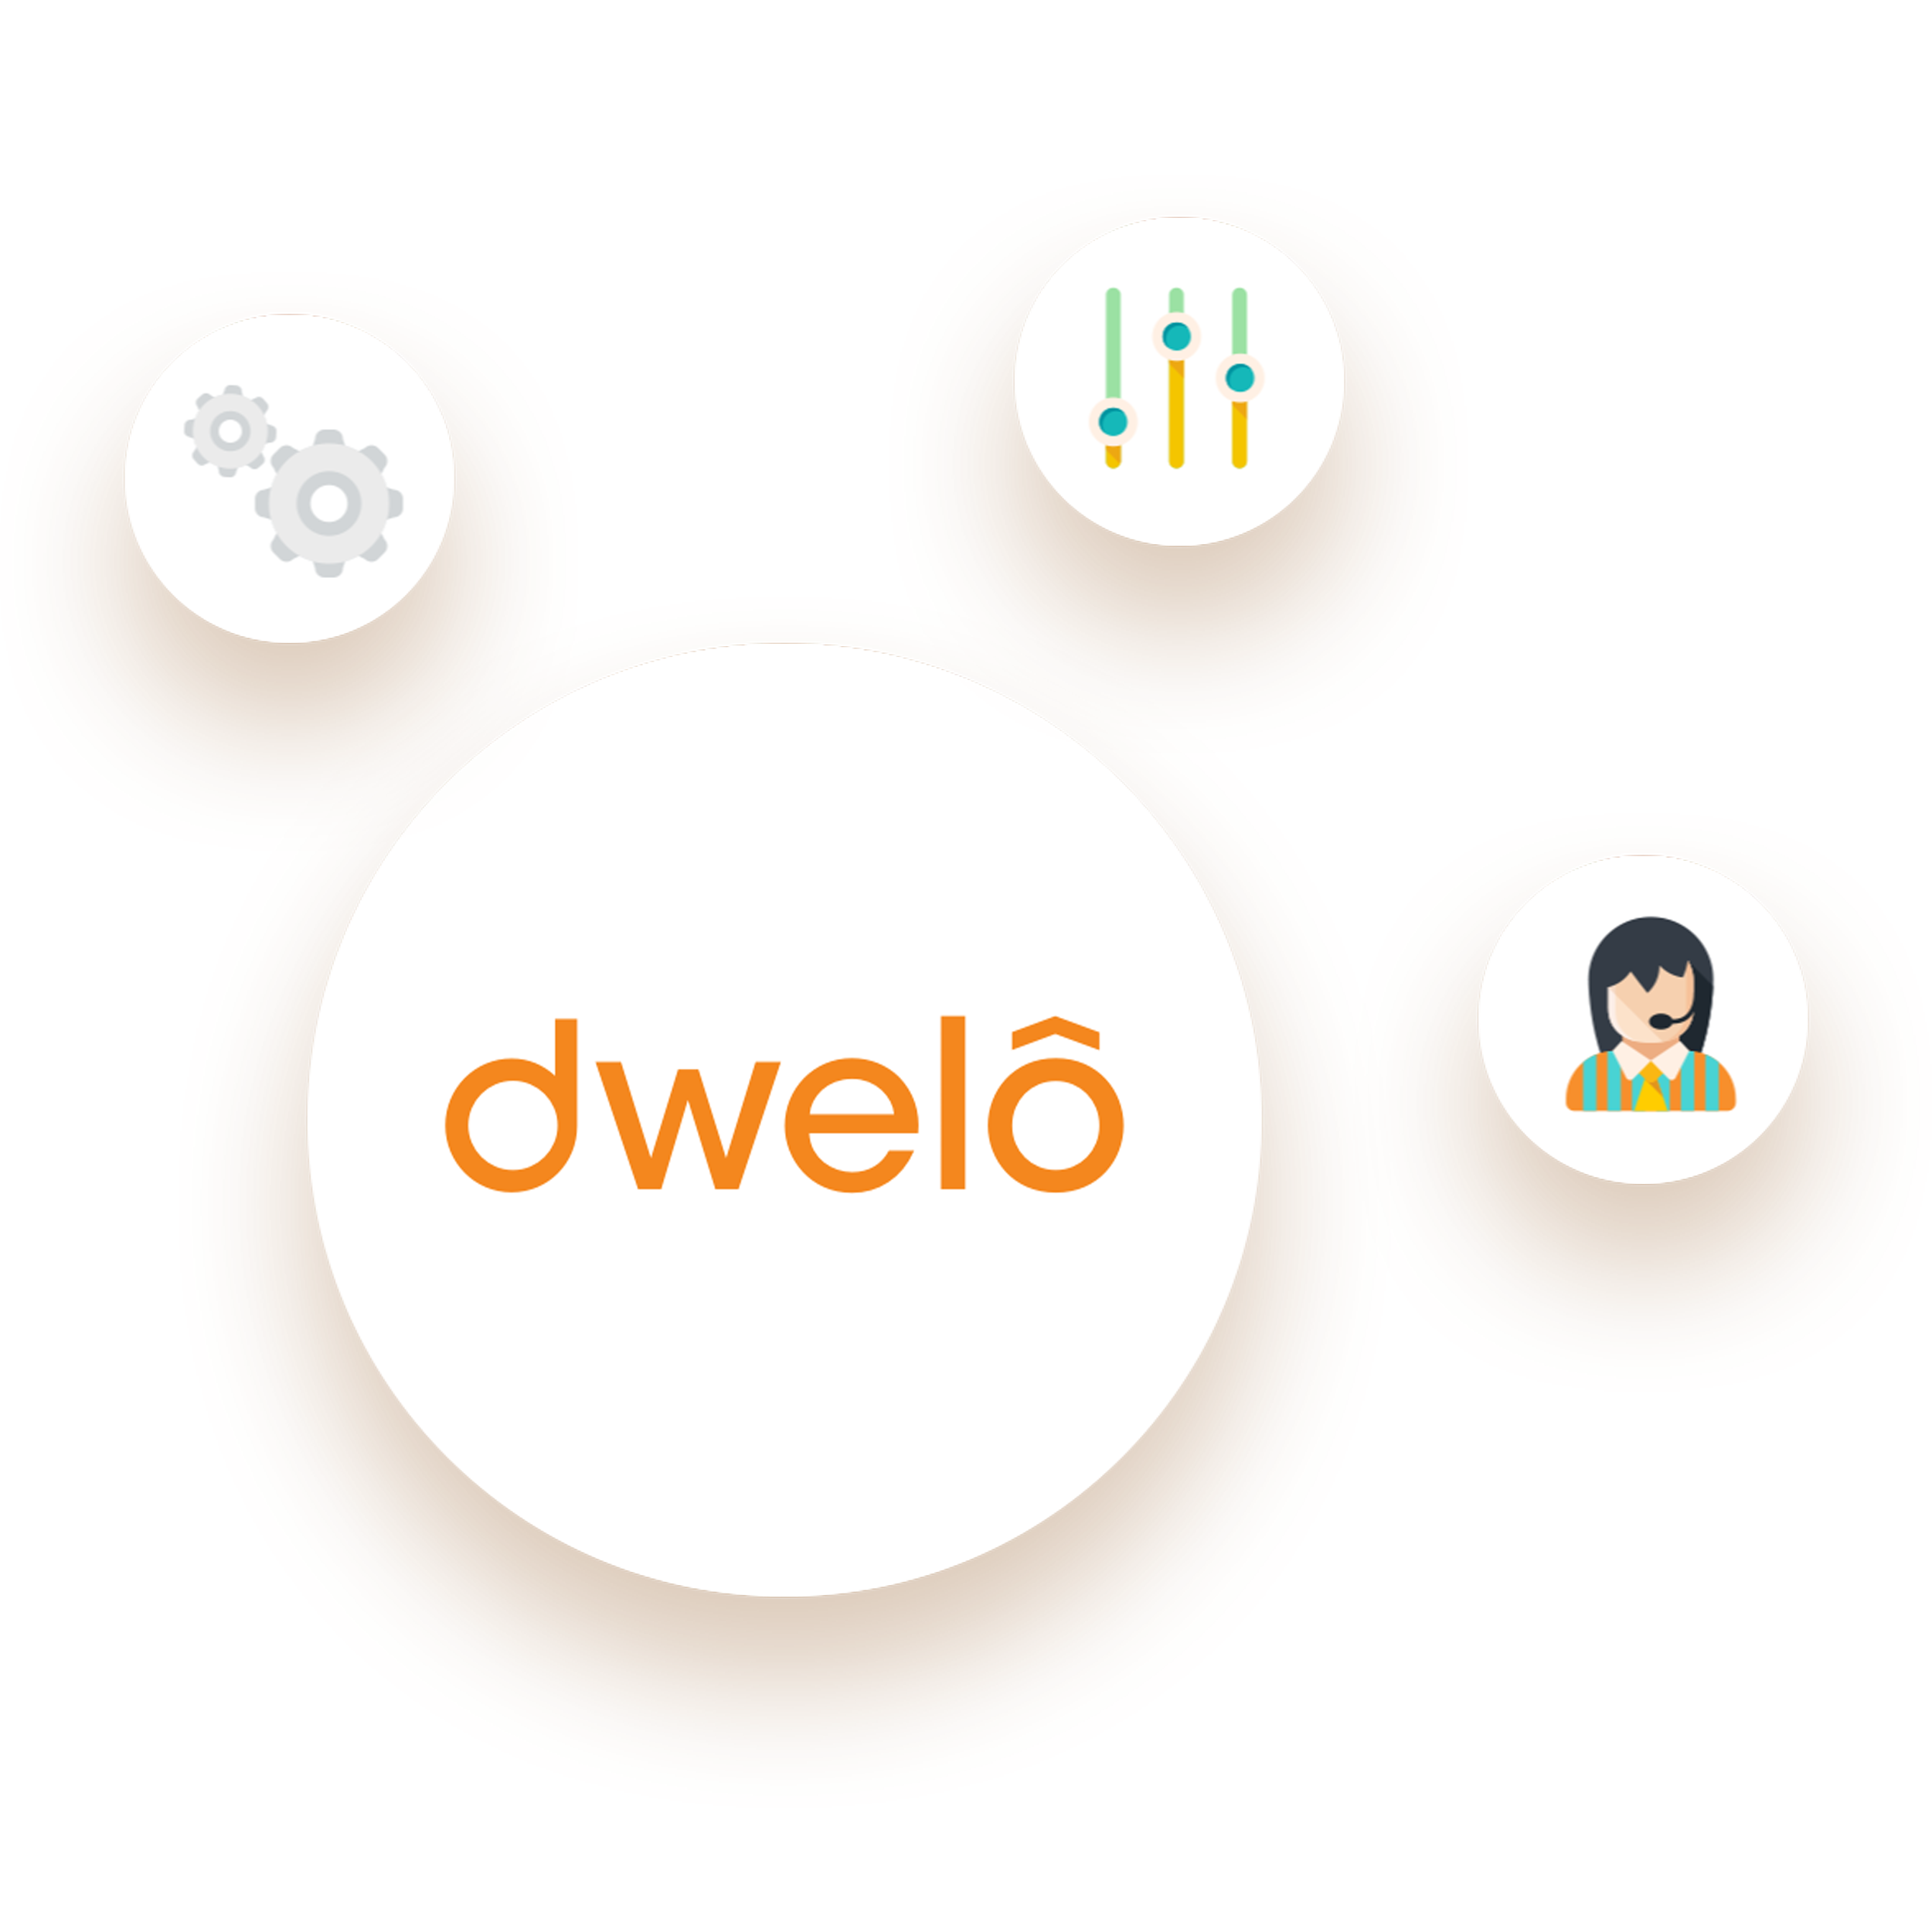 Dwelo is perfect for any class properties, new builds or retrofits.